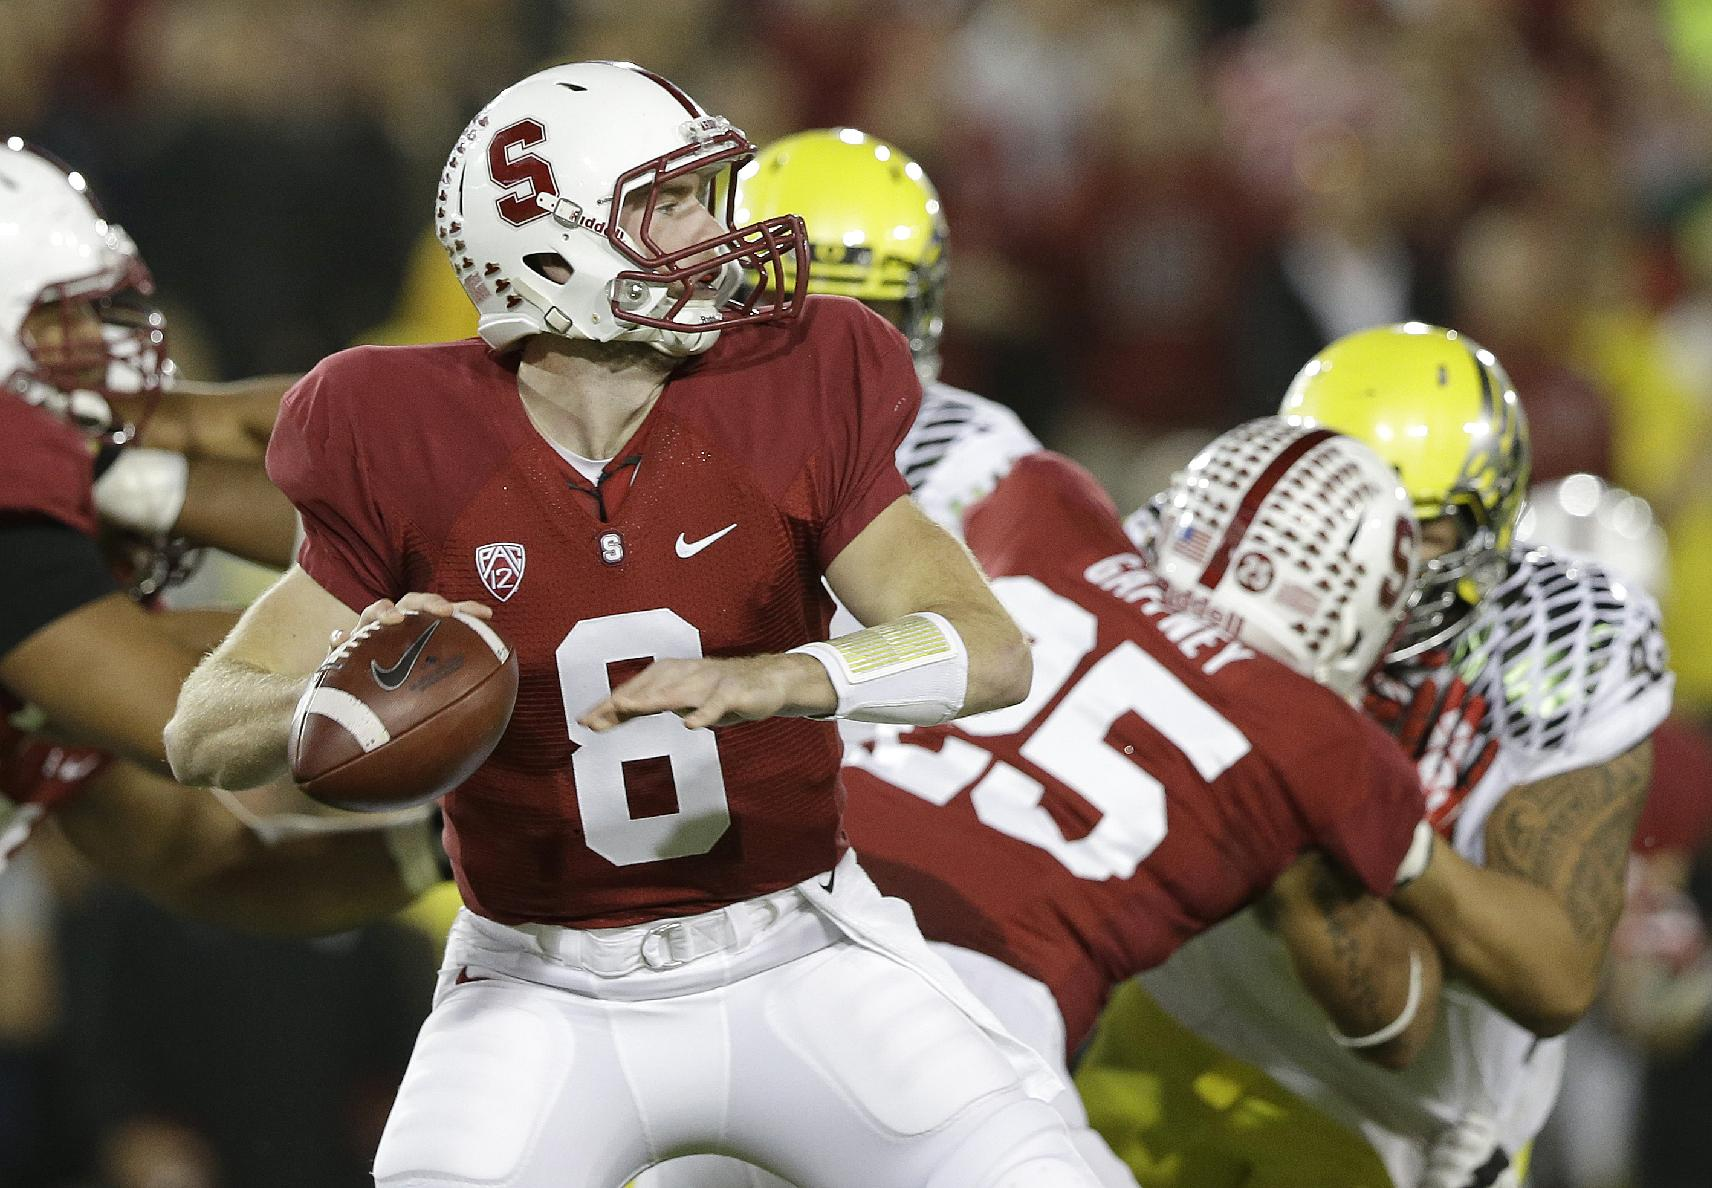 Stanford quarterback Kevin Hogan (8) passes against Oregon during the first quarter of an NCAA college football game in Stanford, Calif., Thursday, Nov. 7, 2013